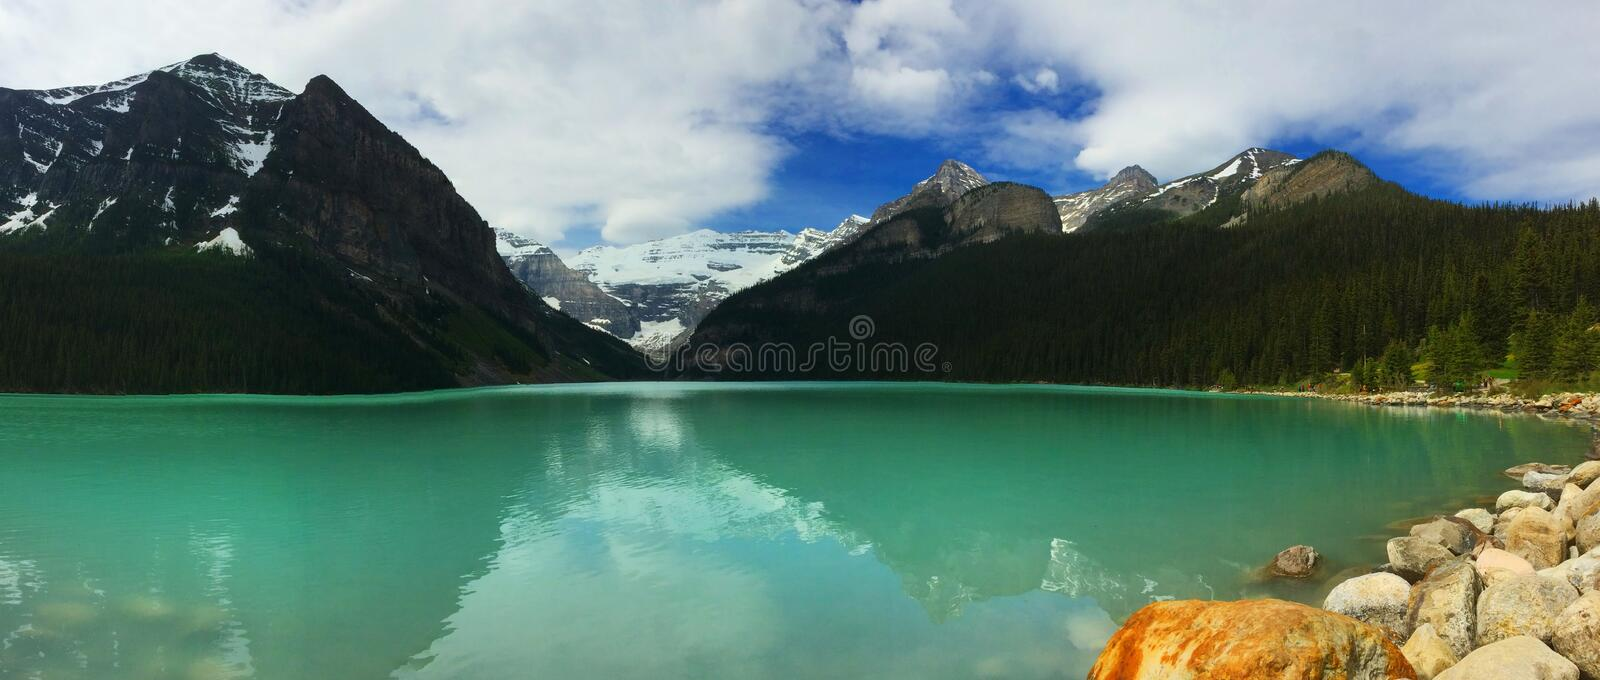 Beautiful nature Landscapes `Jewel of Alberta` Lake Louise in Banff national park, Canada`. One of the world`s most beautiful lake, Lake Louise in Canadian stock images